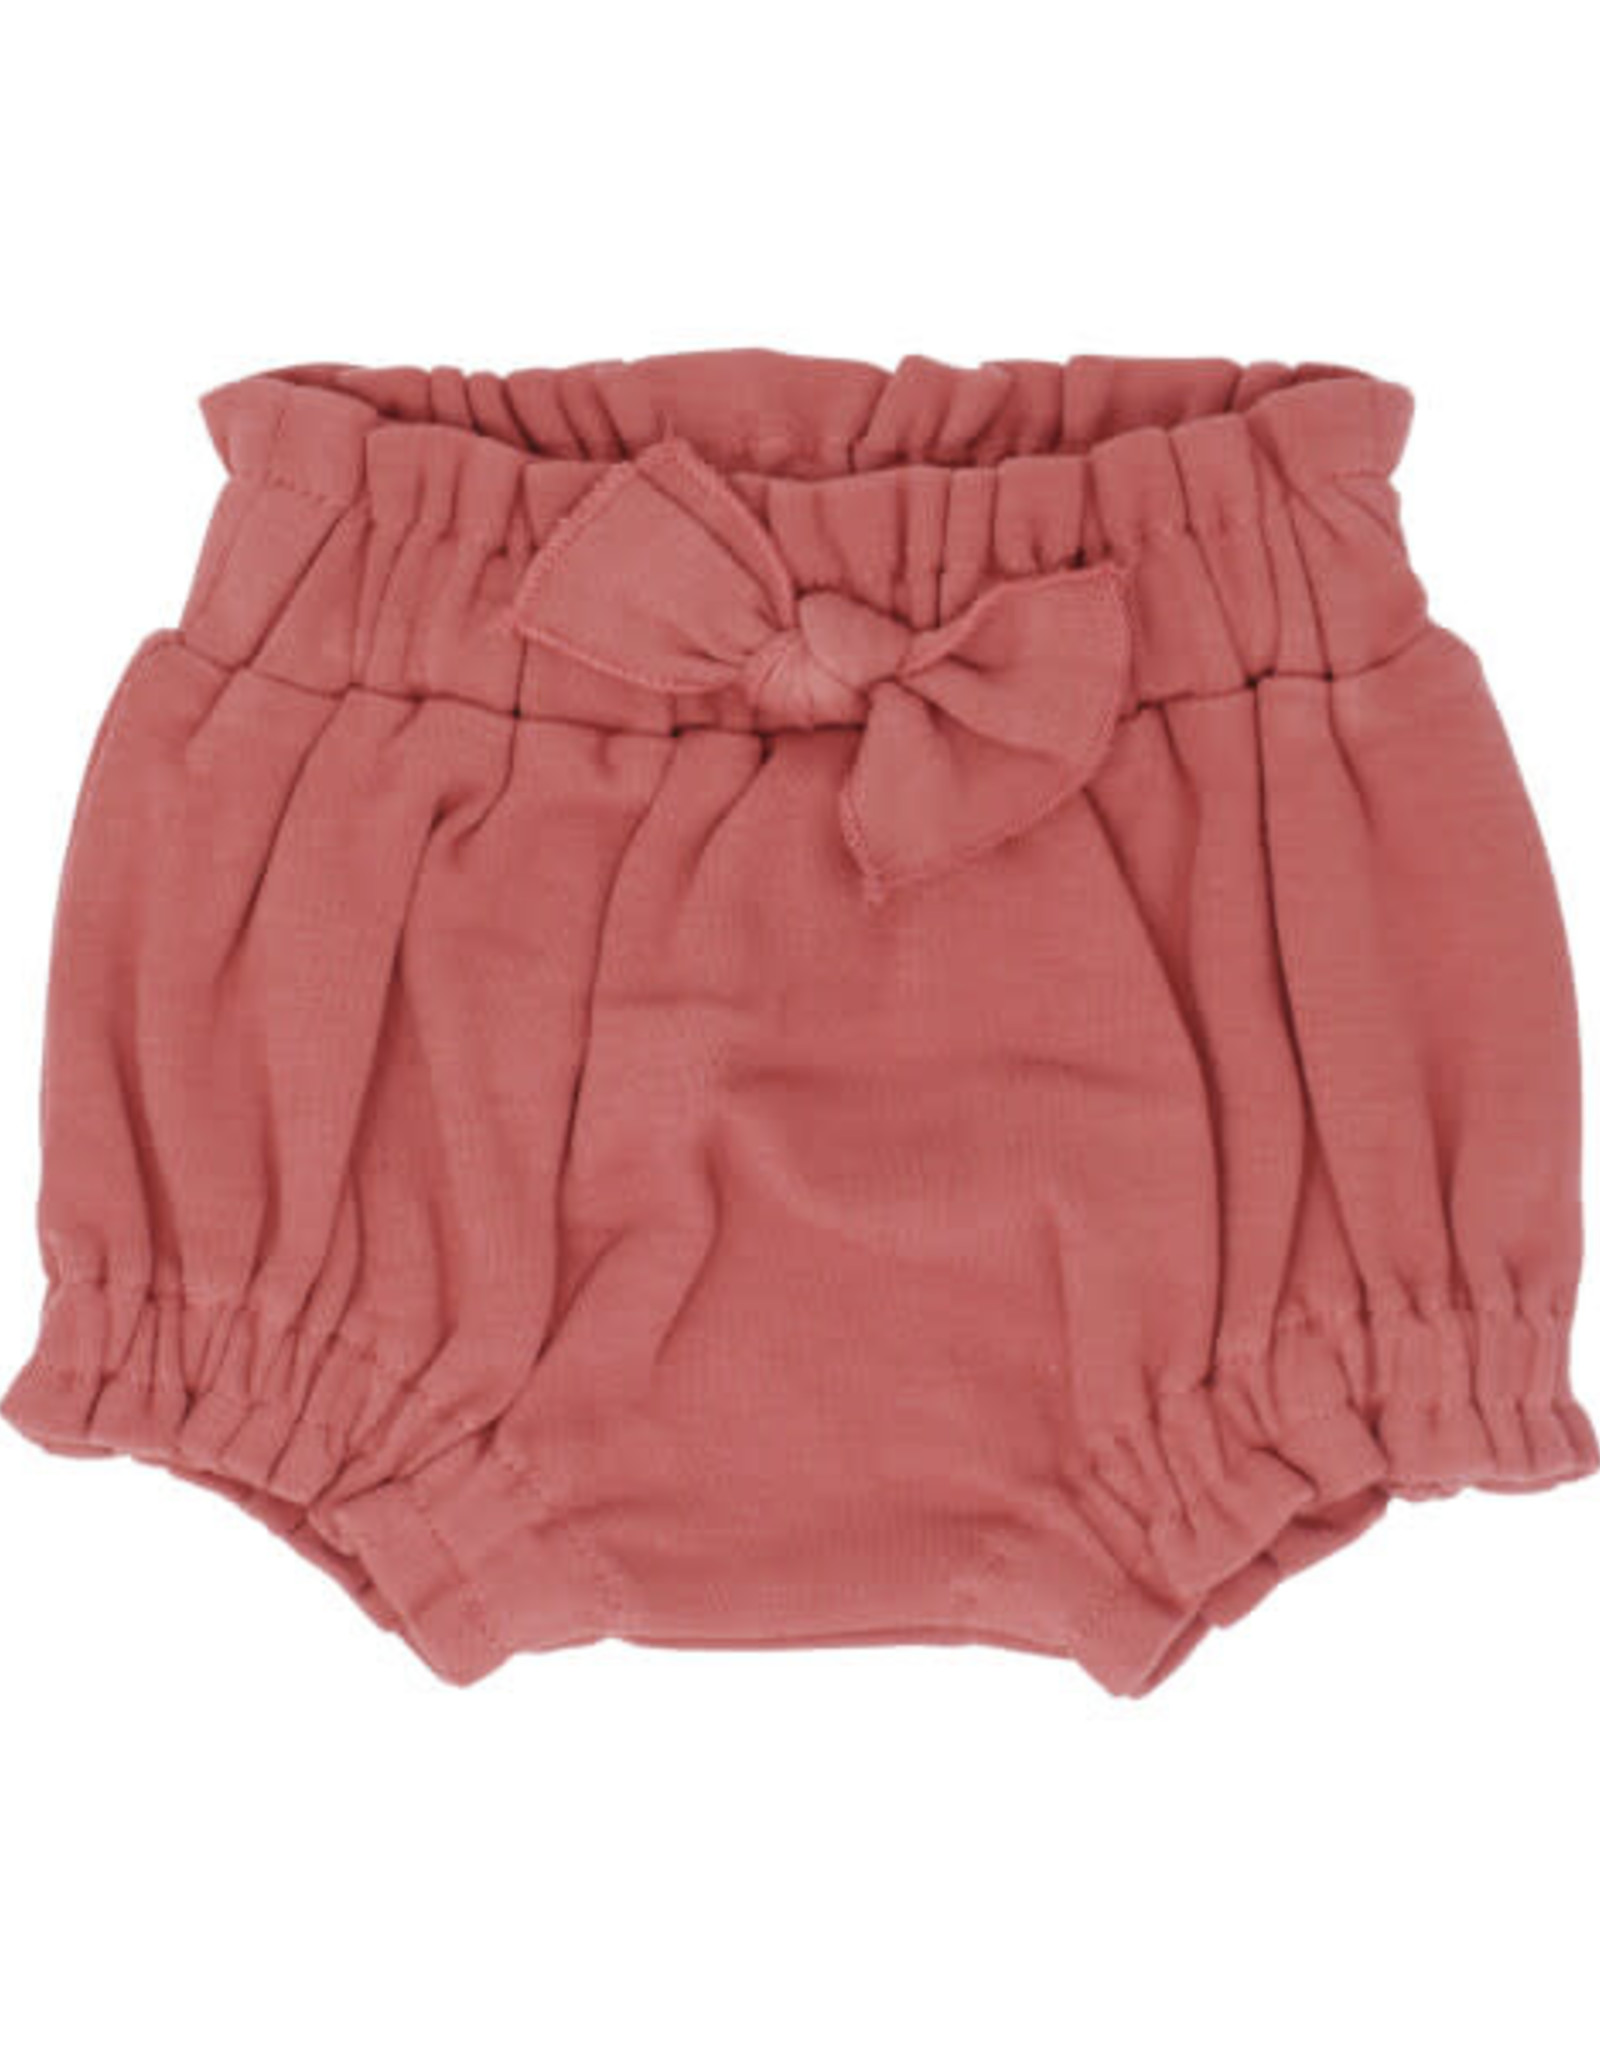 L'oved Baby Ruffle Bloomer Sienna